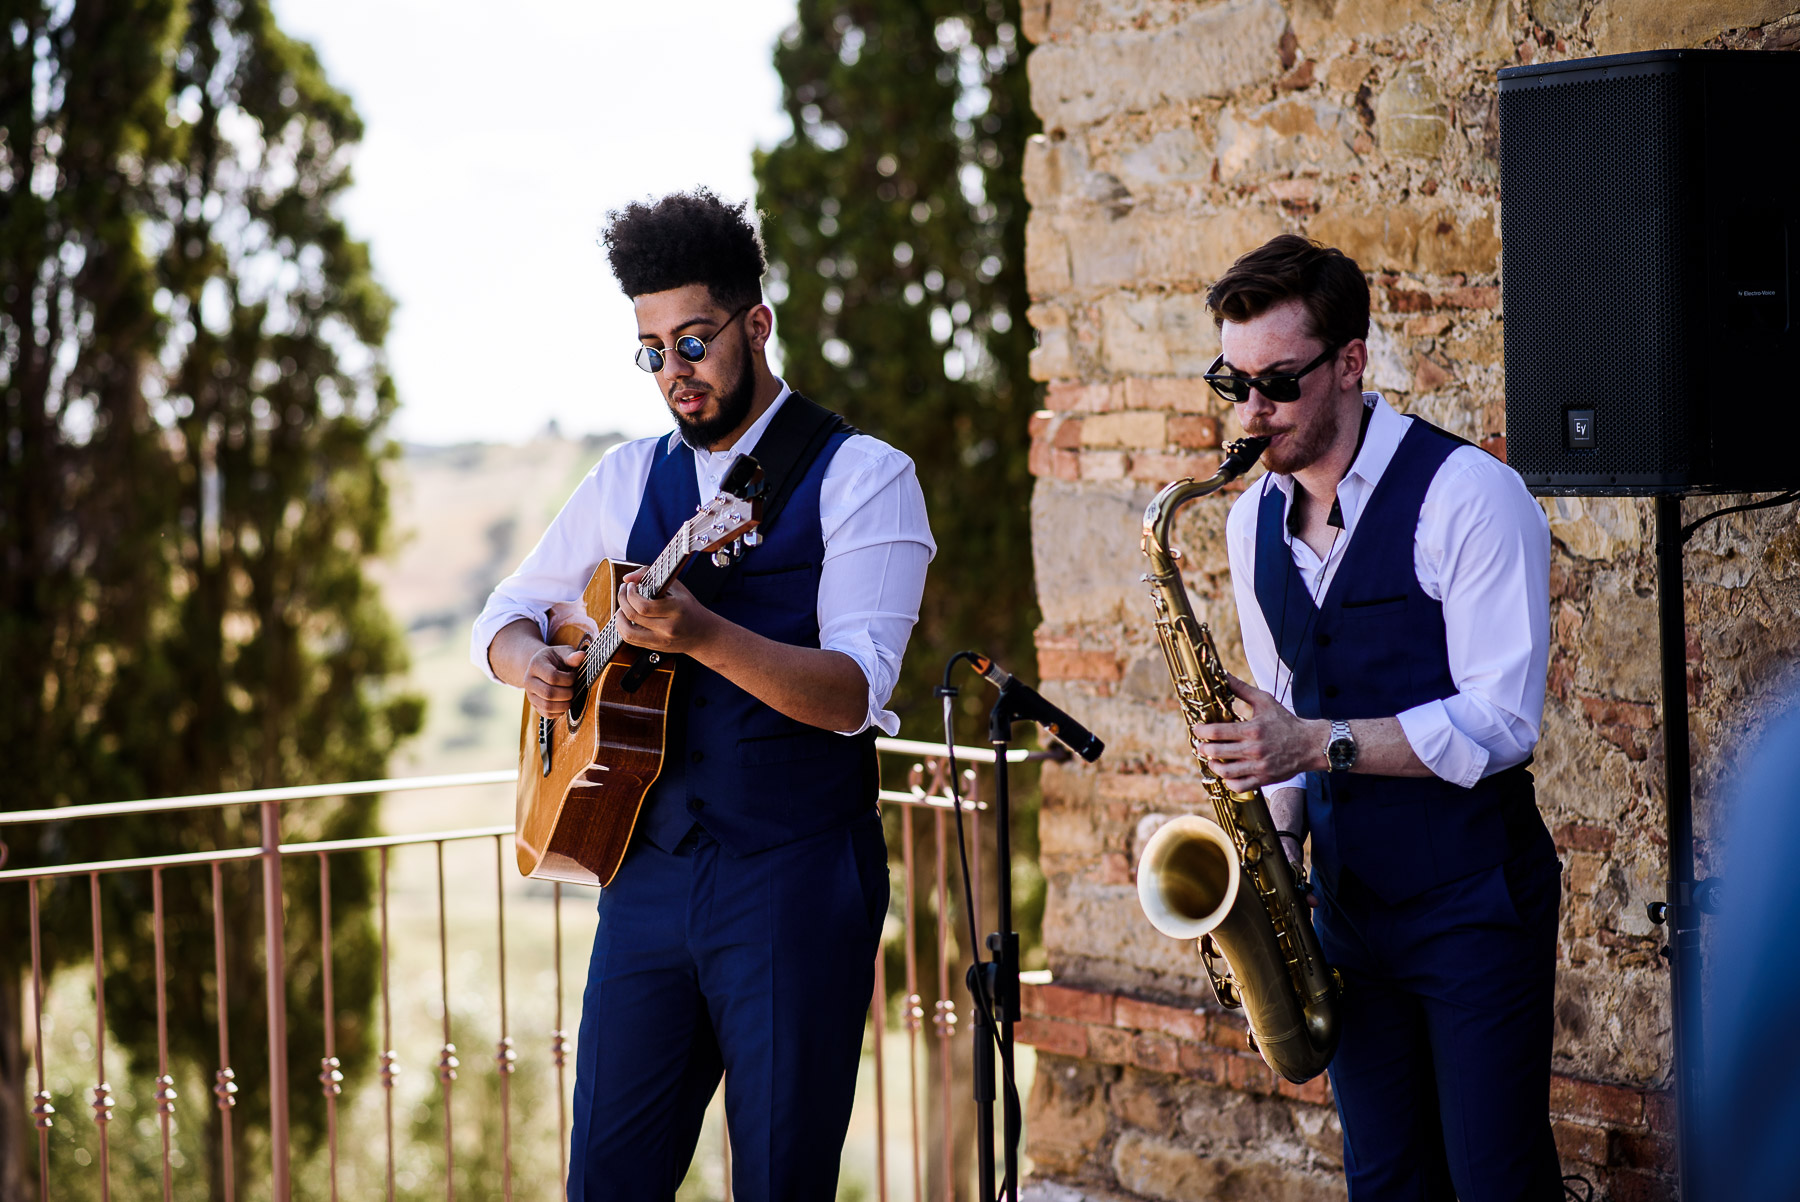 Matrimonio in Toscana, accompagnamento musicale